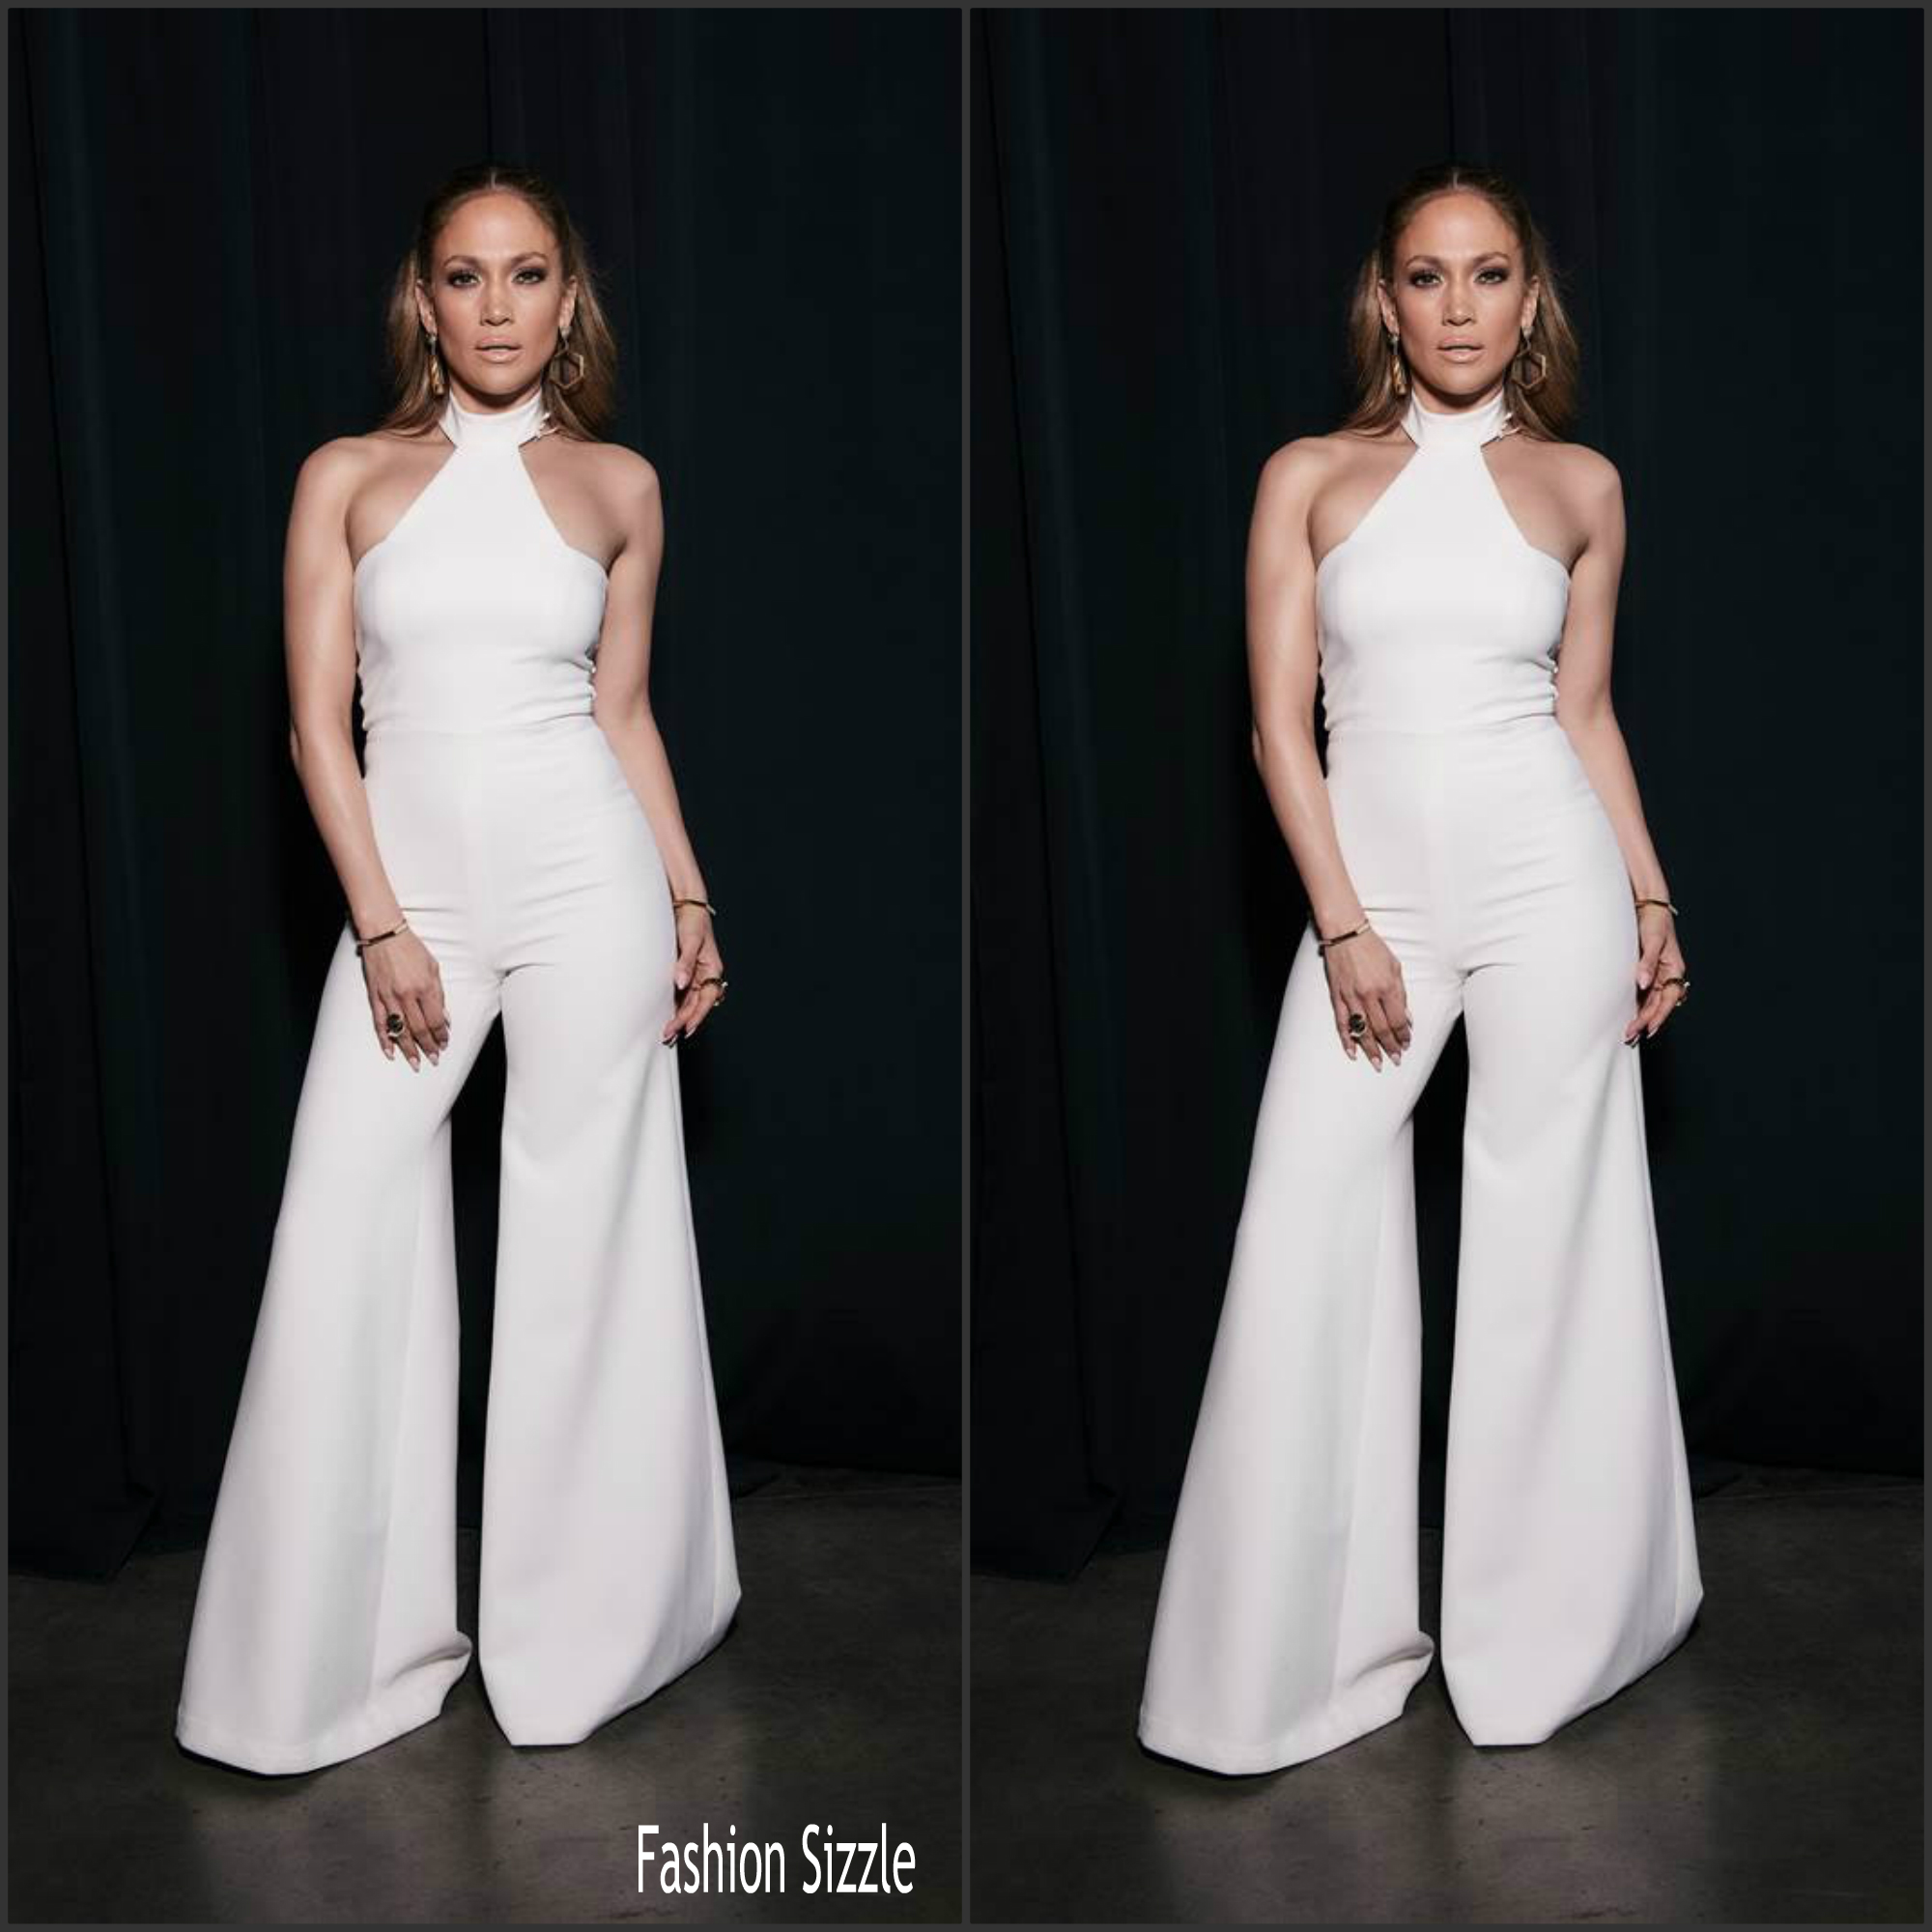 jennifer-lopez-in-vatanika-american-idol